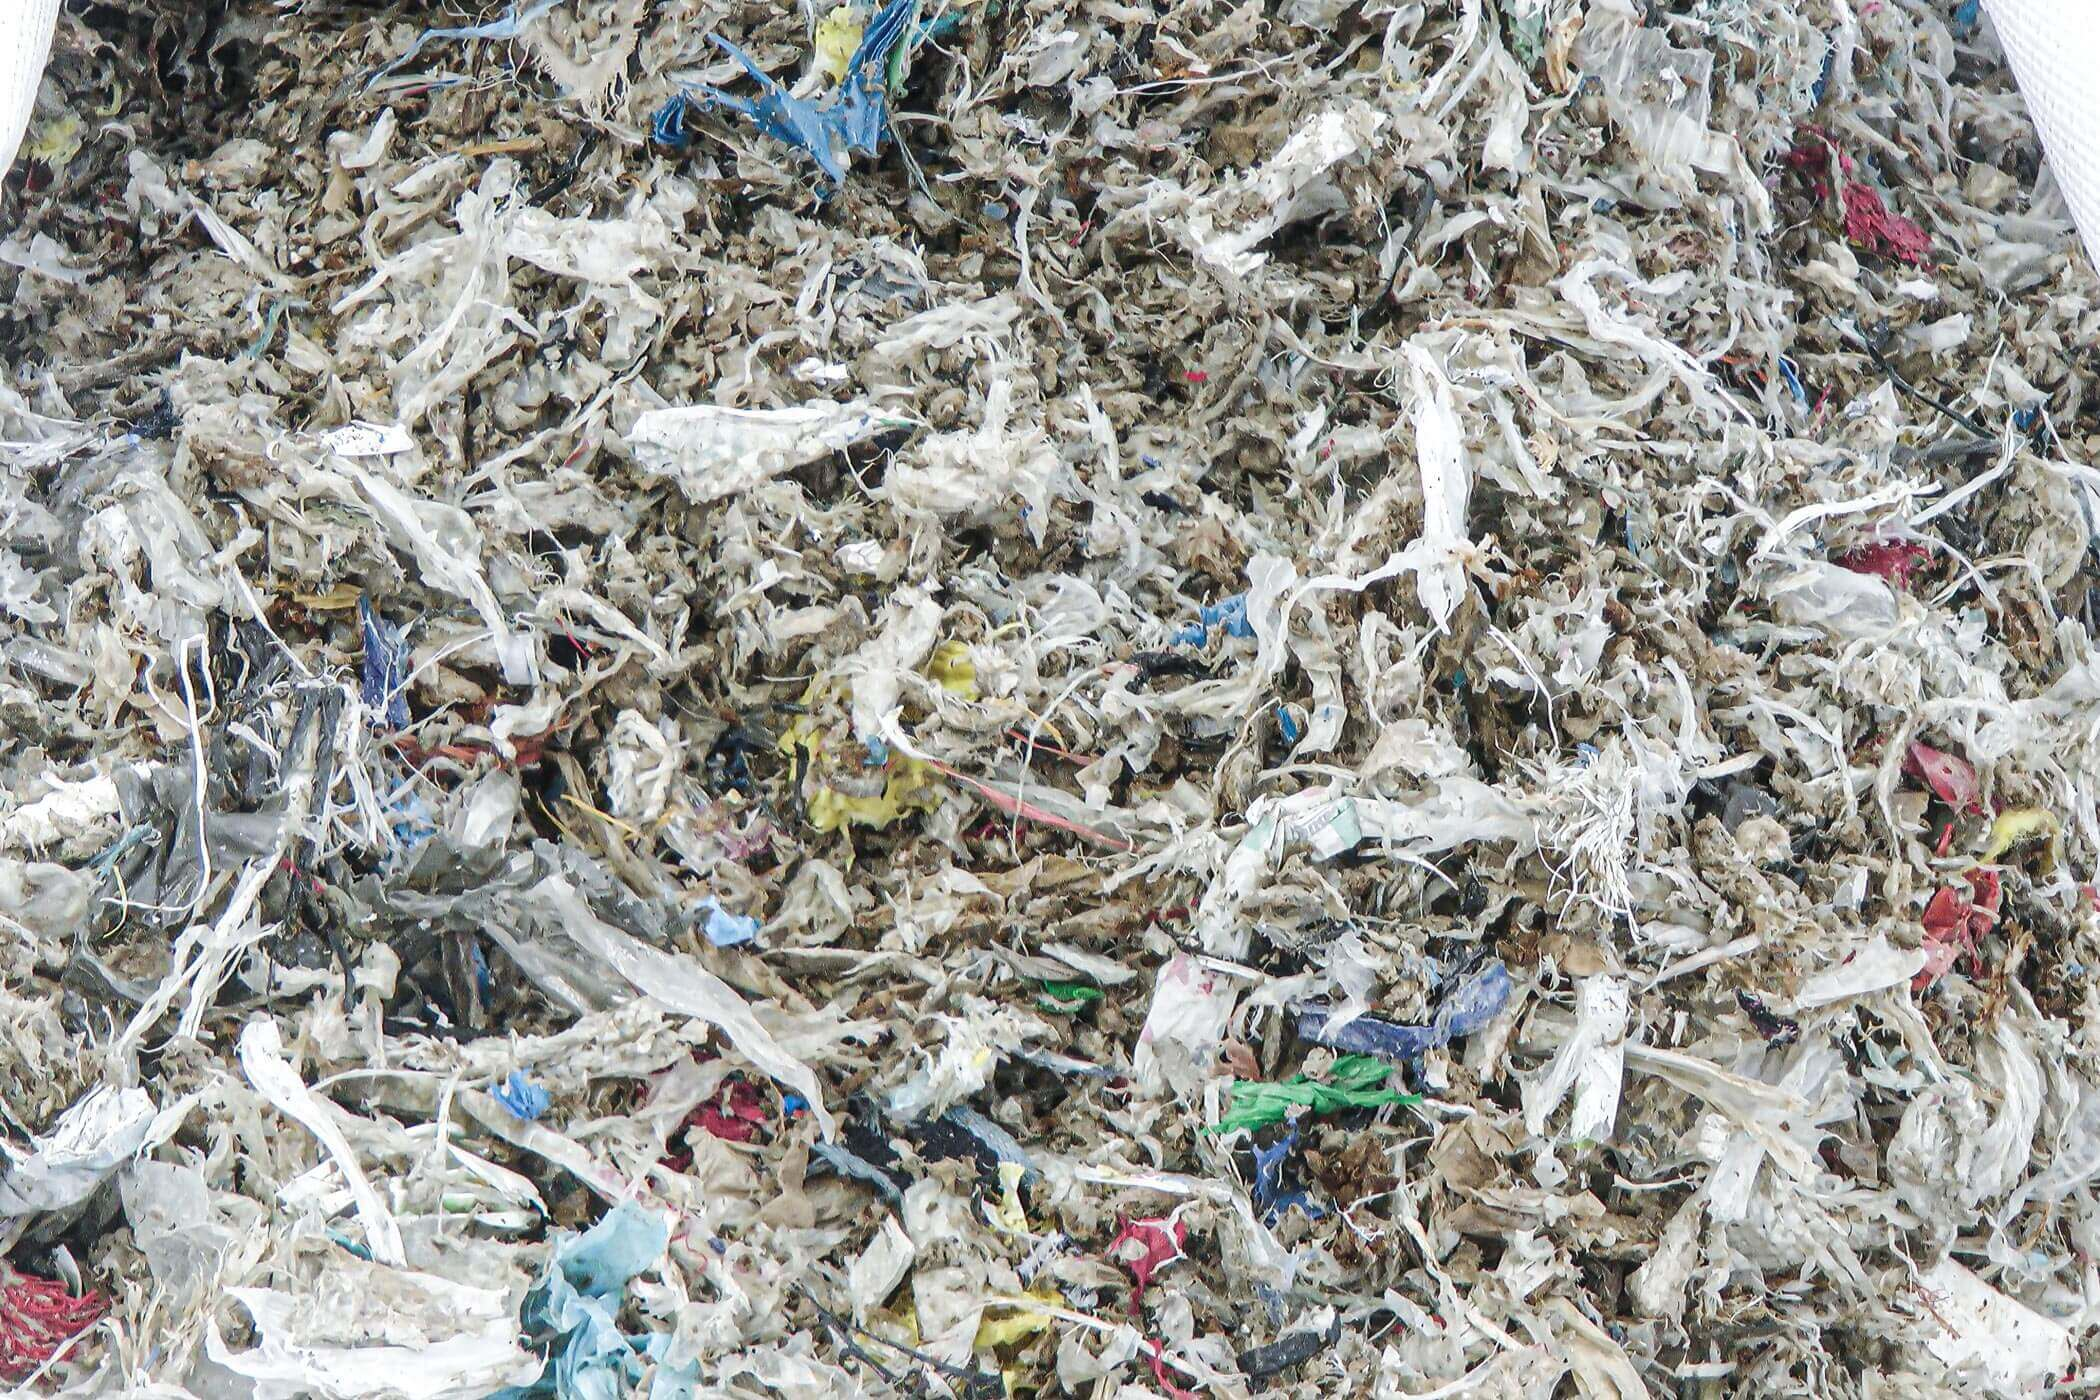 Shredded rejects of plastic, metal